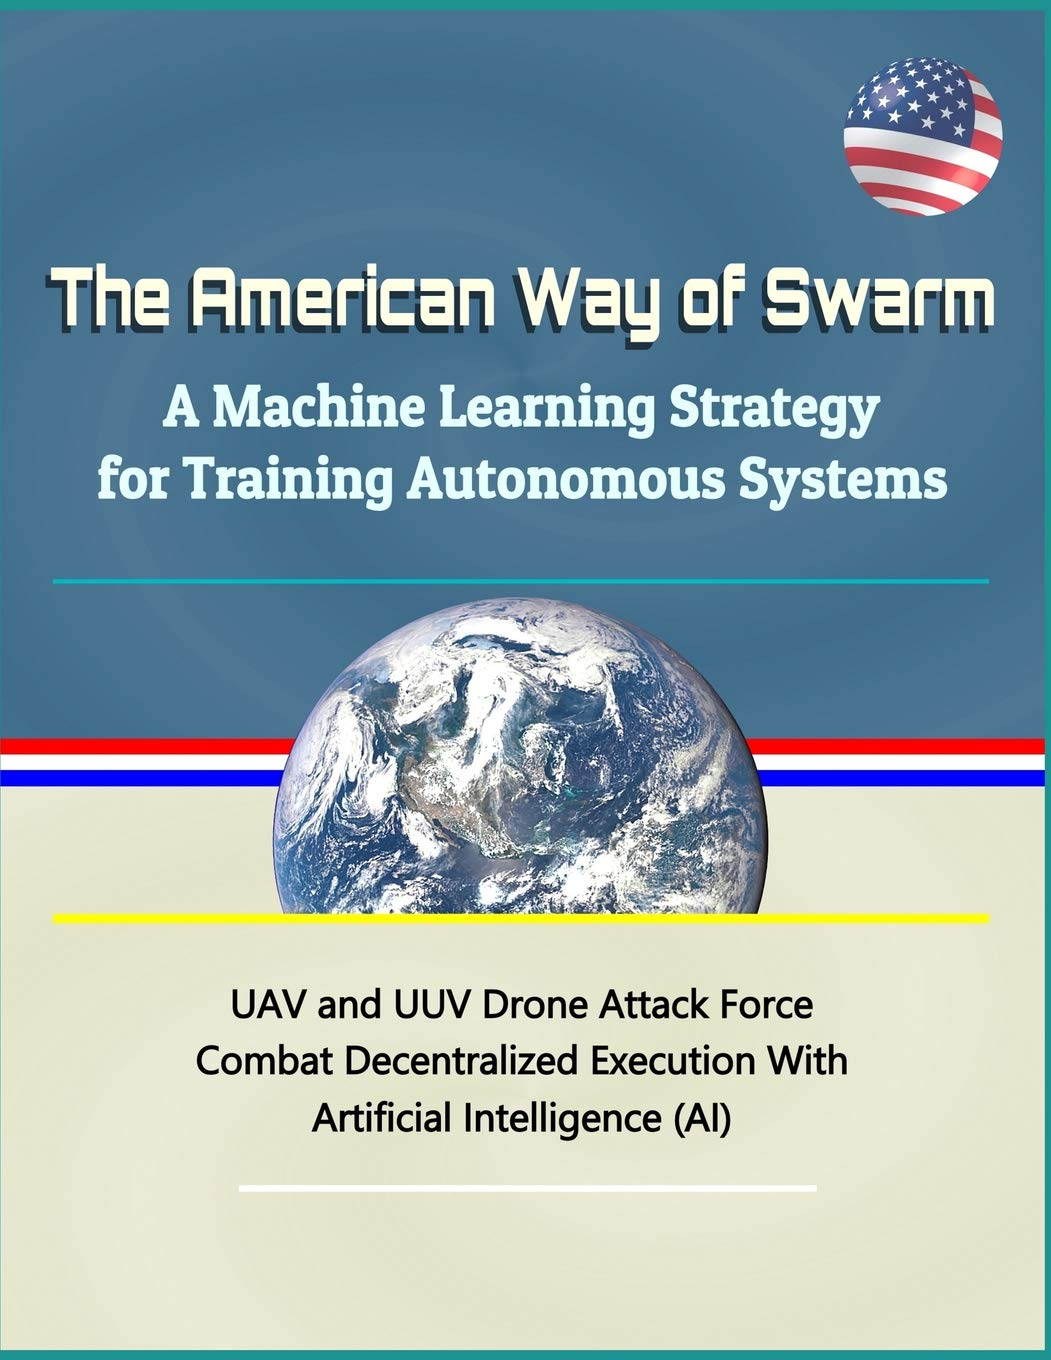 The American Way of Swarm: A Machine Learning Strategy for